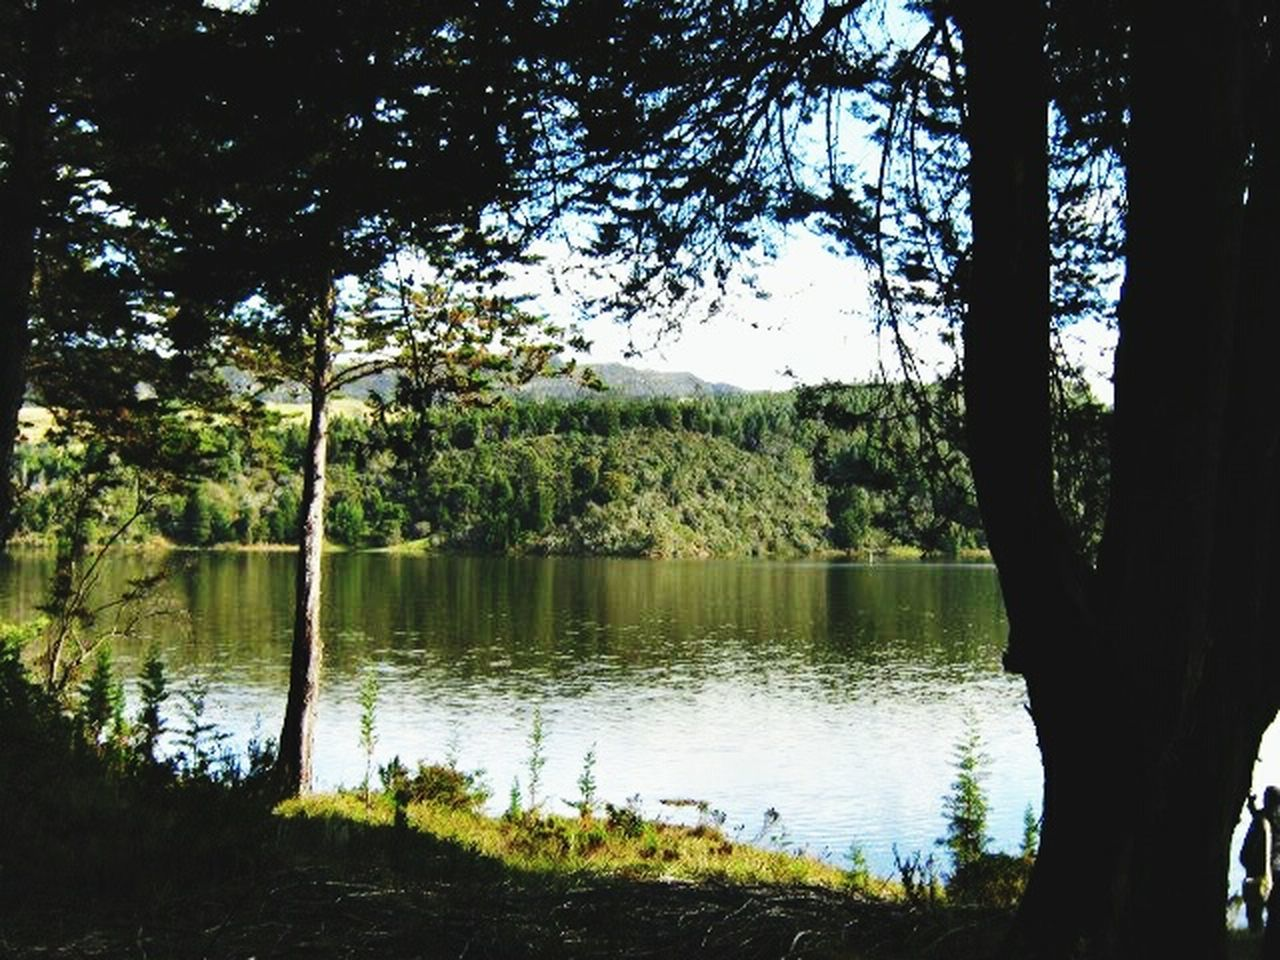 tree, nature, lake, forest, flora, growth, water, reflection, landscape, no people, outdoors, beauty in nature, day